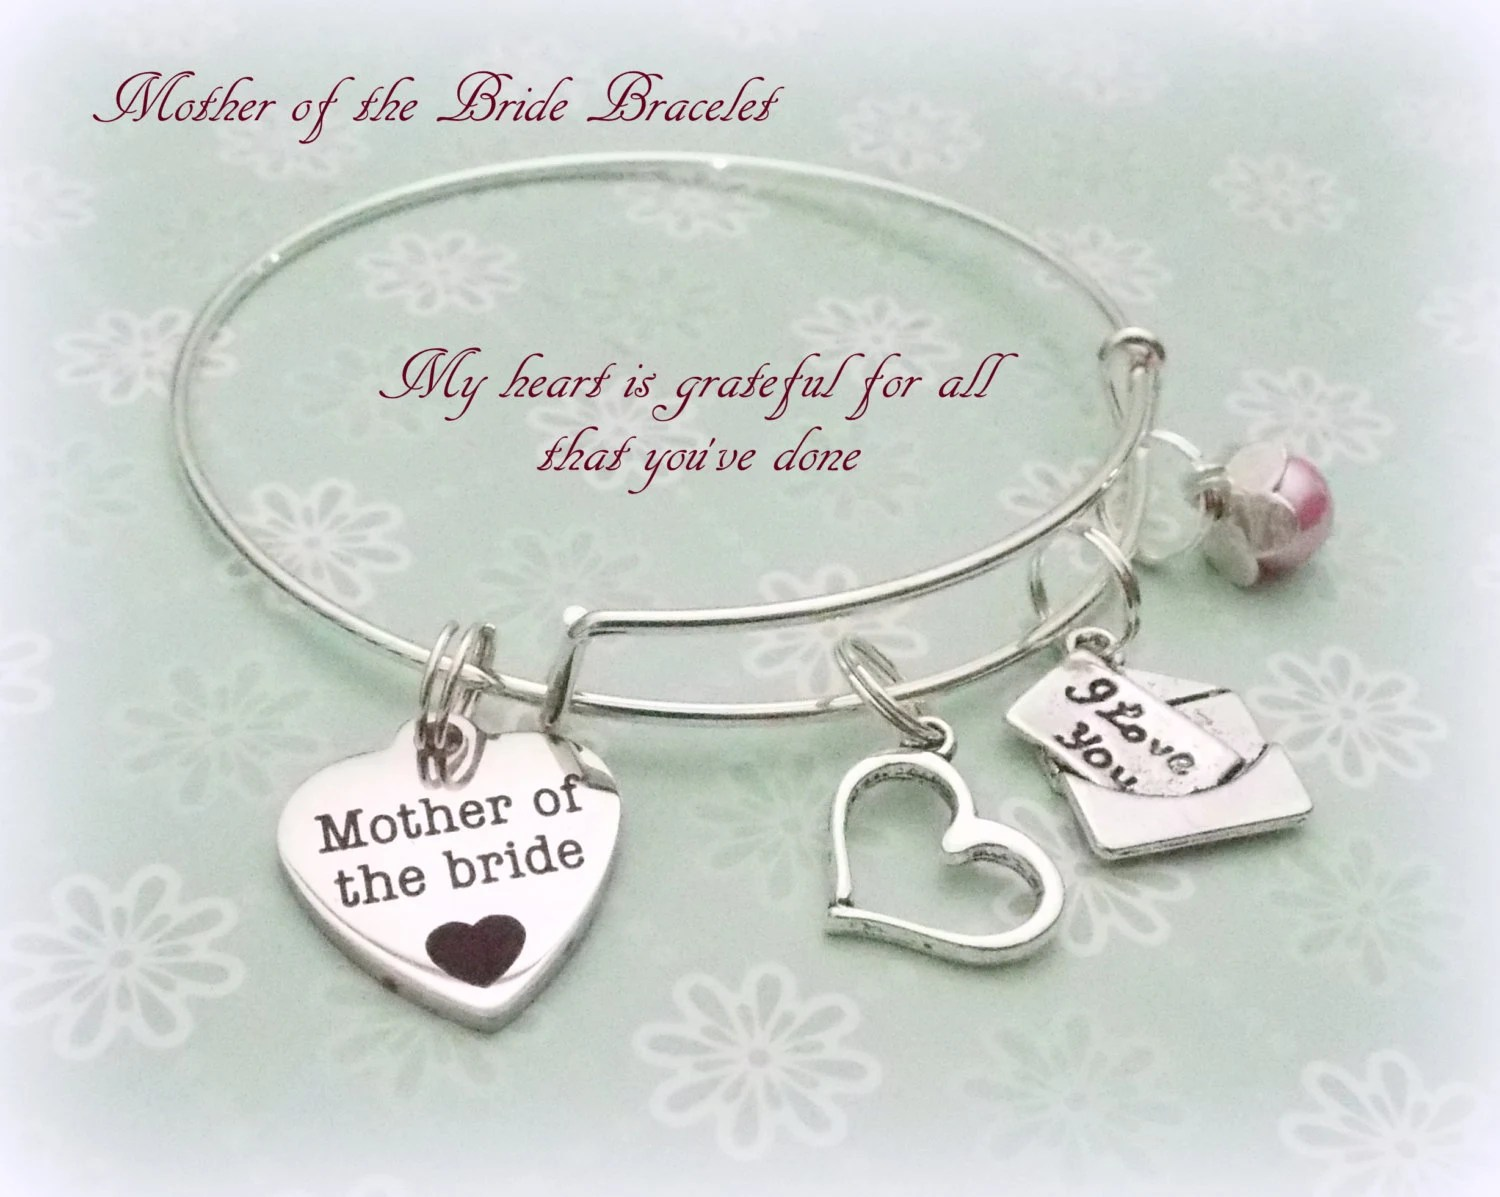 Fullsize Of Mother Of The Bride Gifts